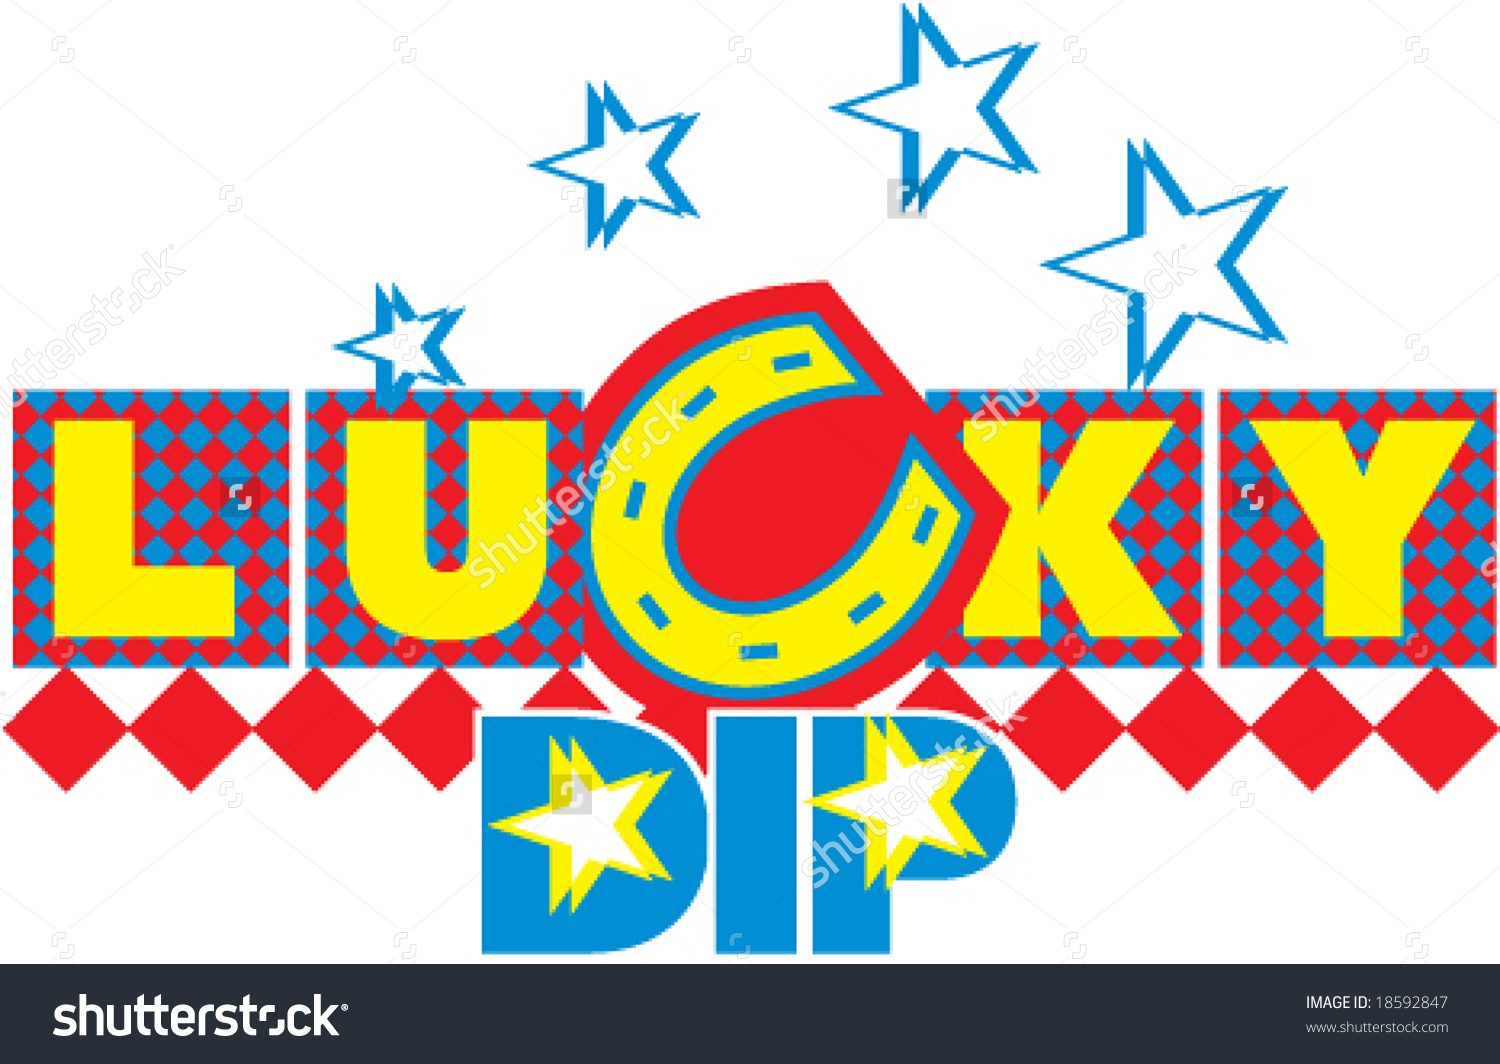 Free lucky dip clipart png free download Free lucky dip clipart - ClipartFest png free download